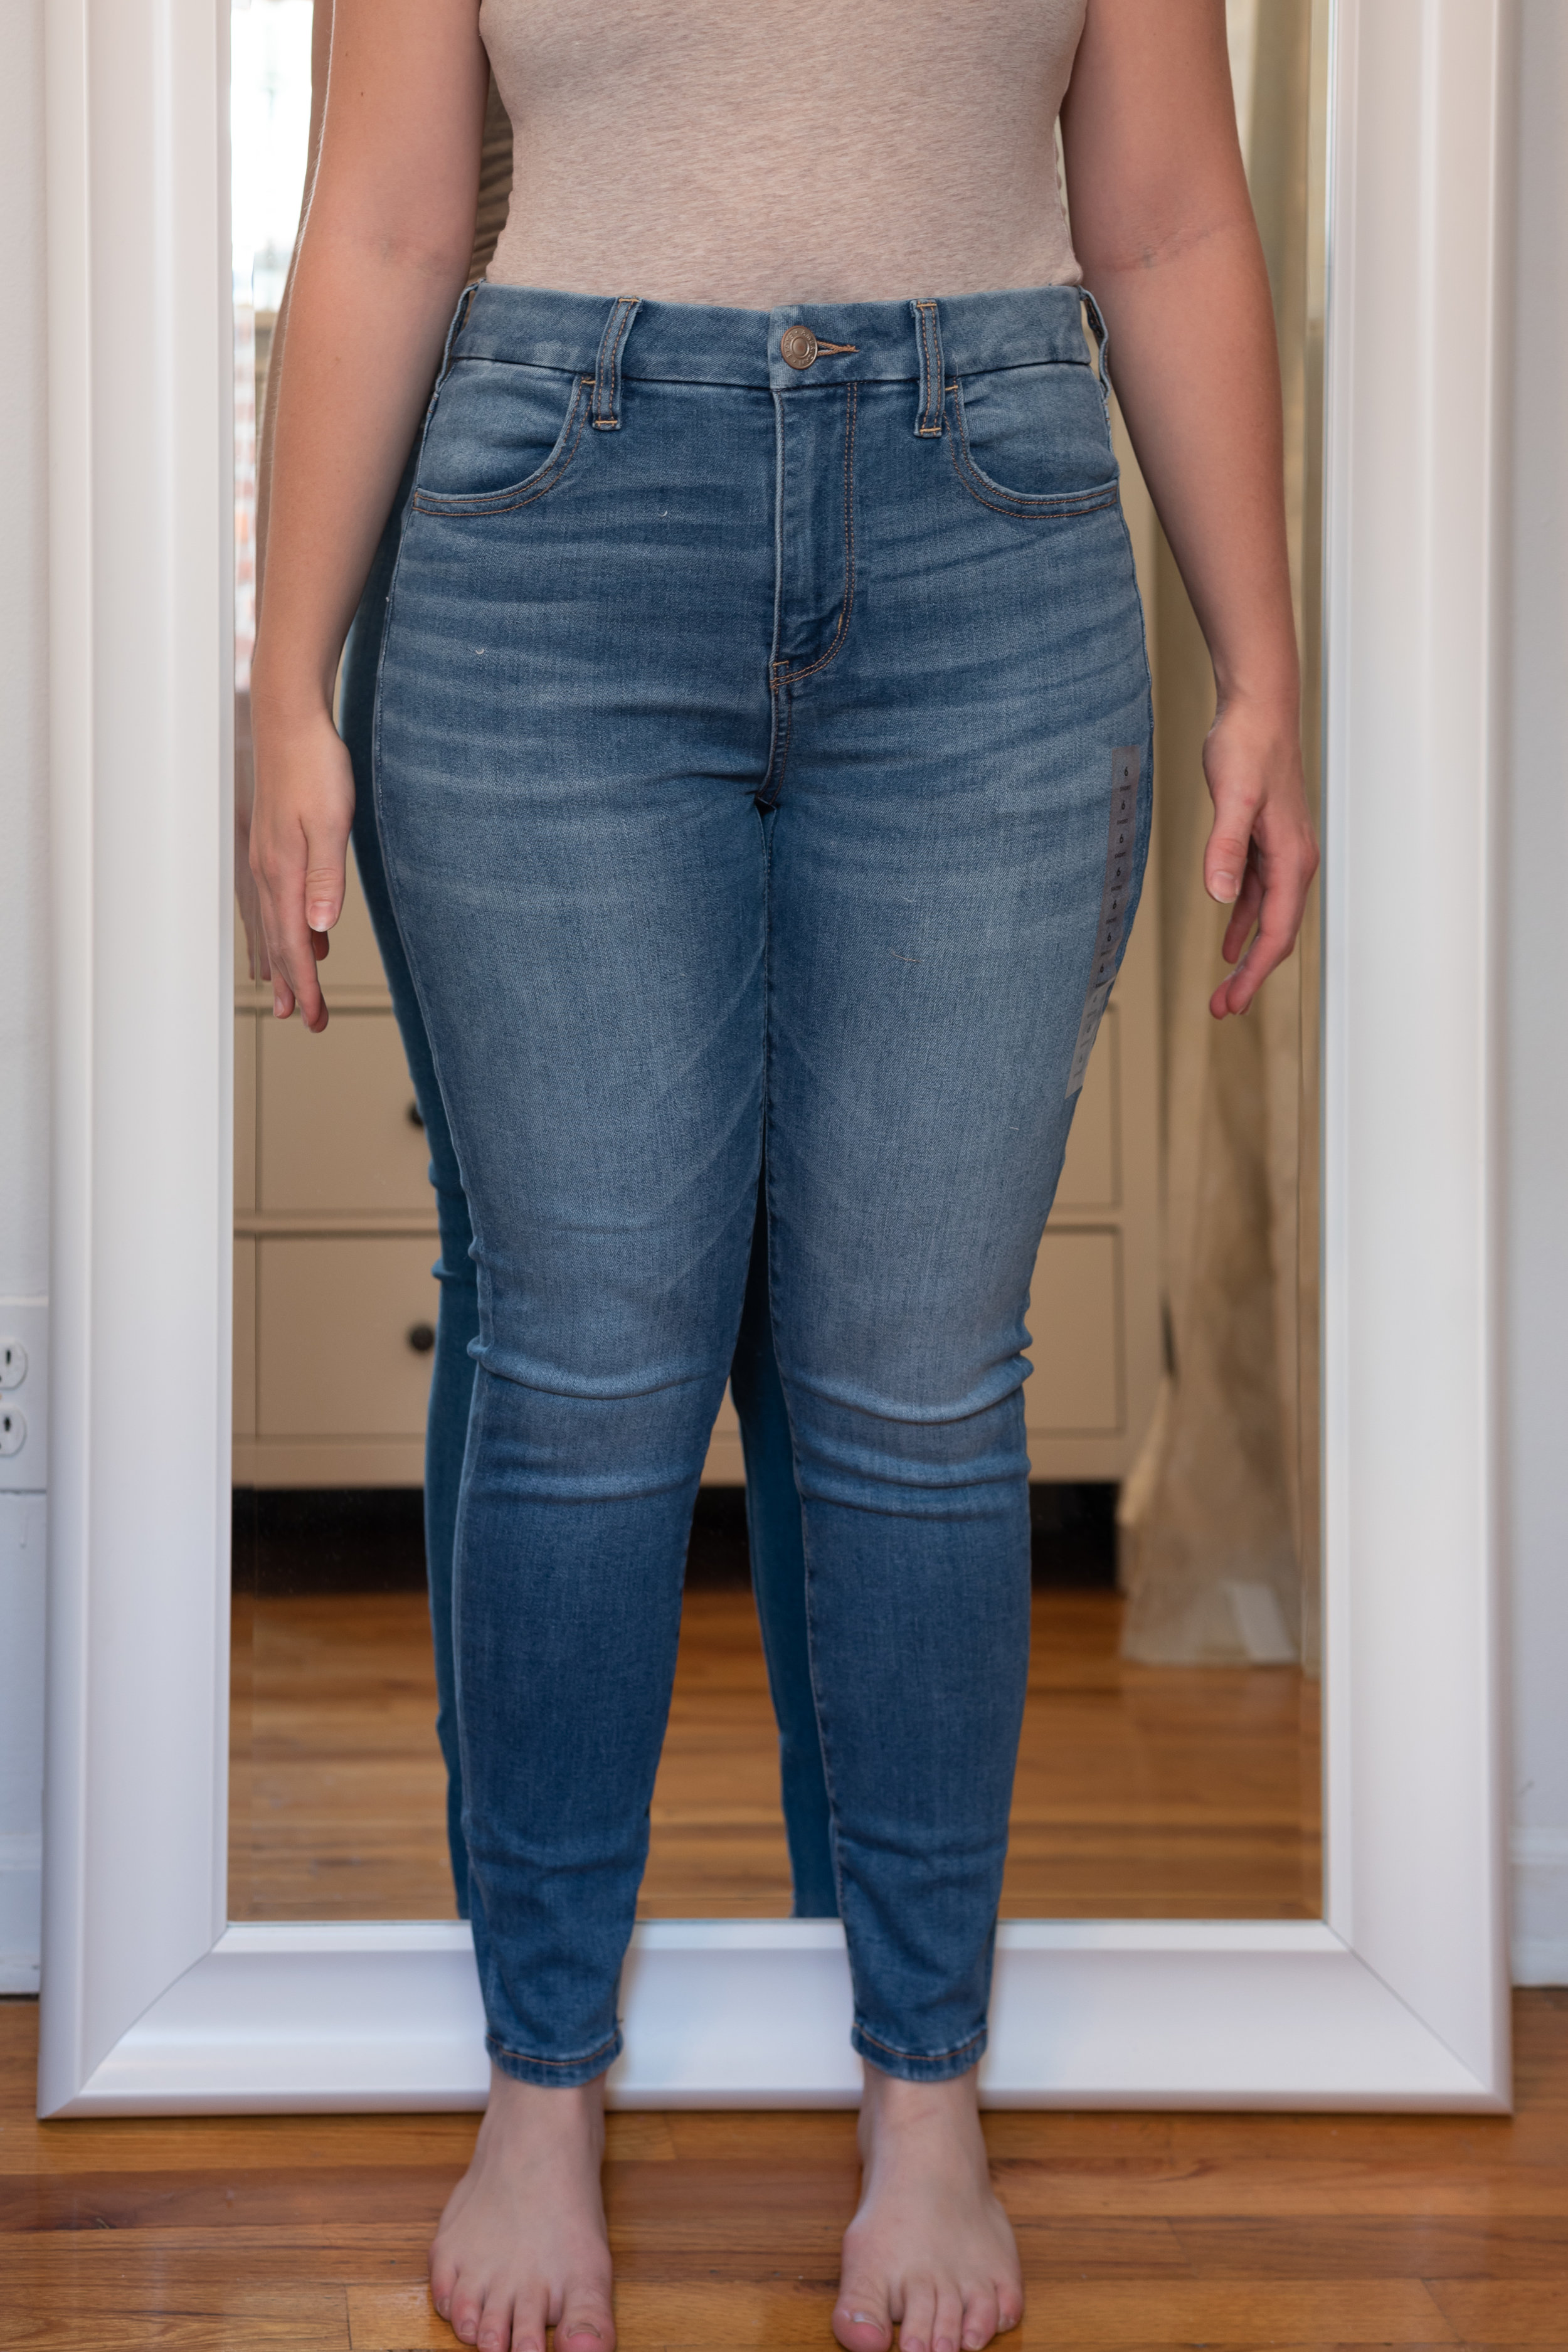 American Eagle Ne(X)t Level Curvy High Rise Jegging - Size 6 Short